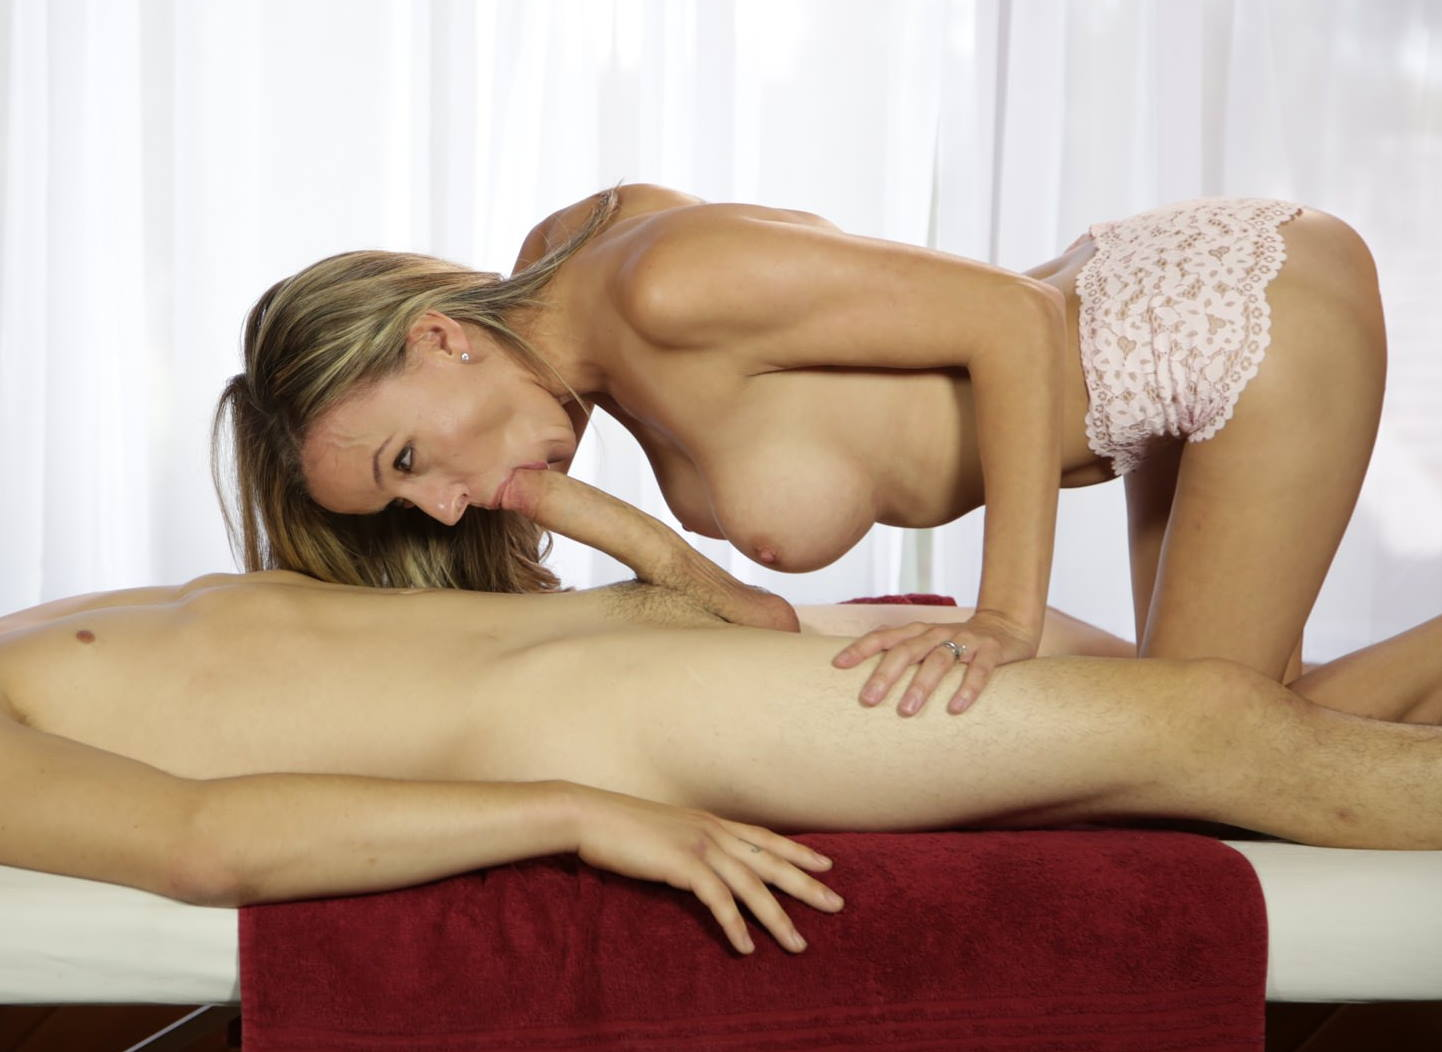 Masseuse performs sloppy oral massage on clients big cock